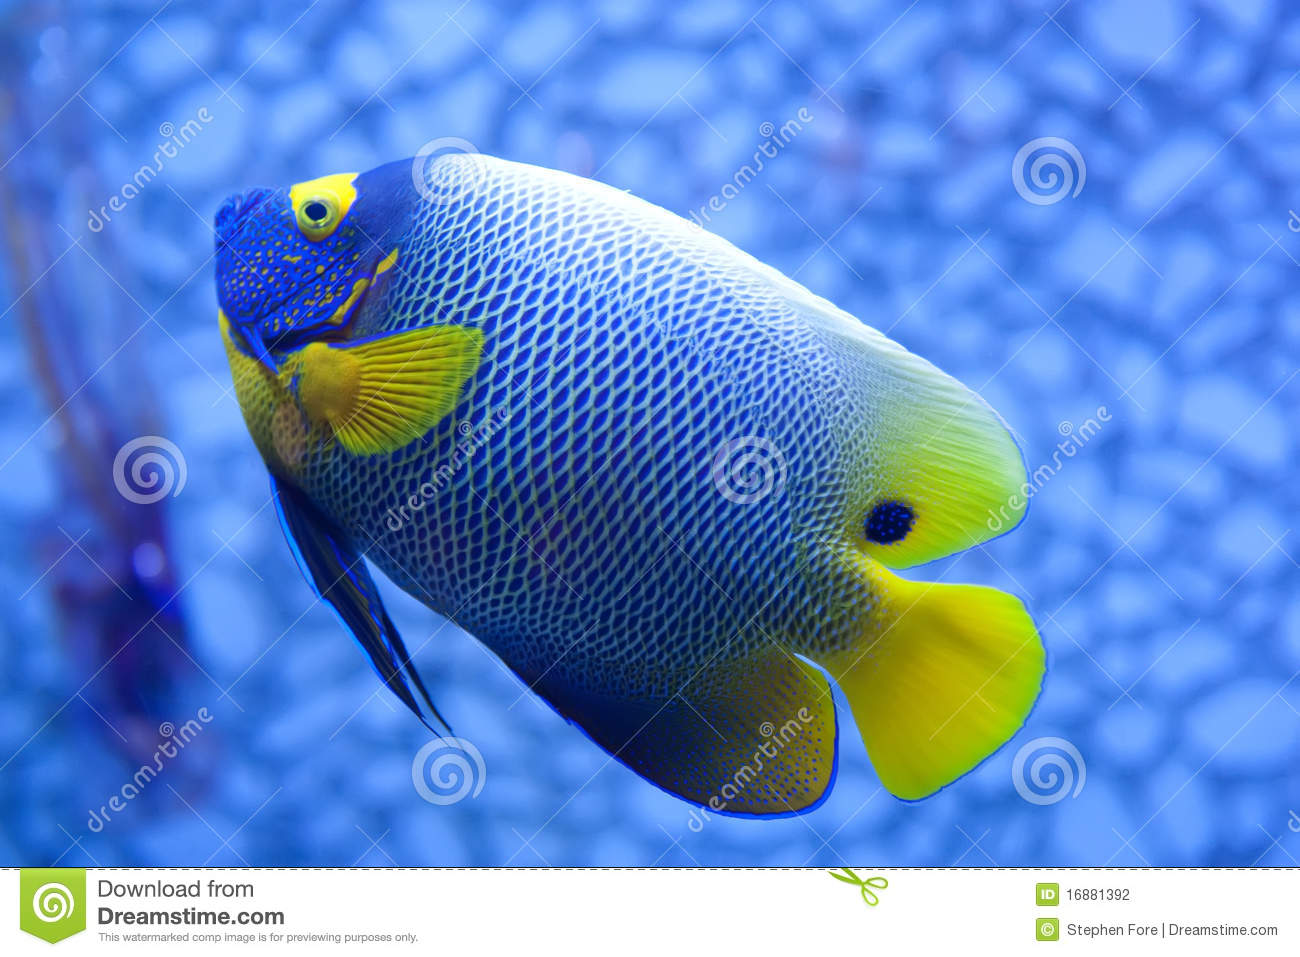 Poissons tropicaux photographie stock image 16881392 for Poisson tropicaux